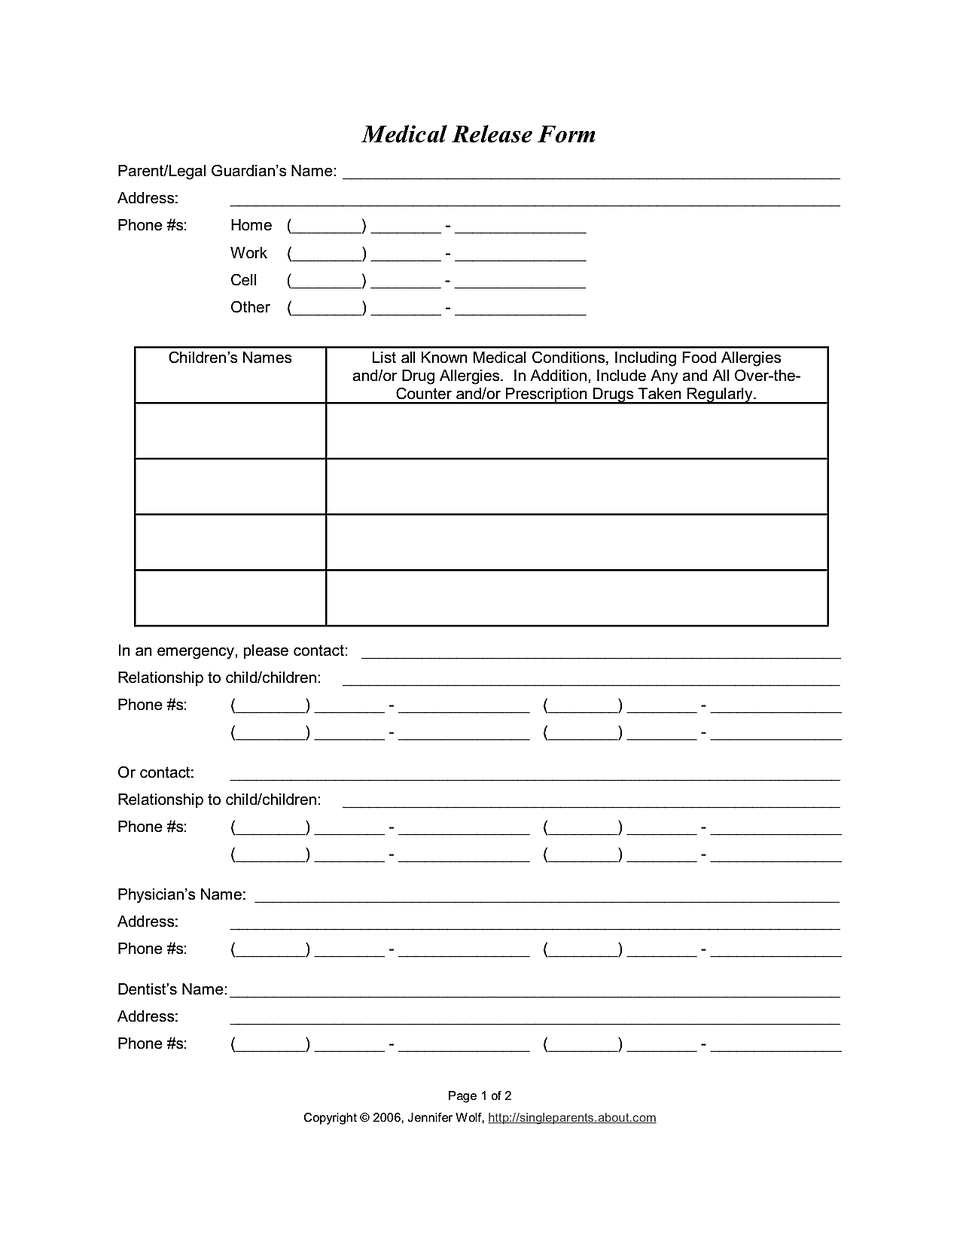 Medical Release Form For - Free Printable Medical Release Form